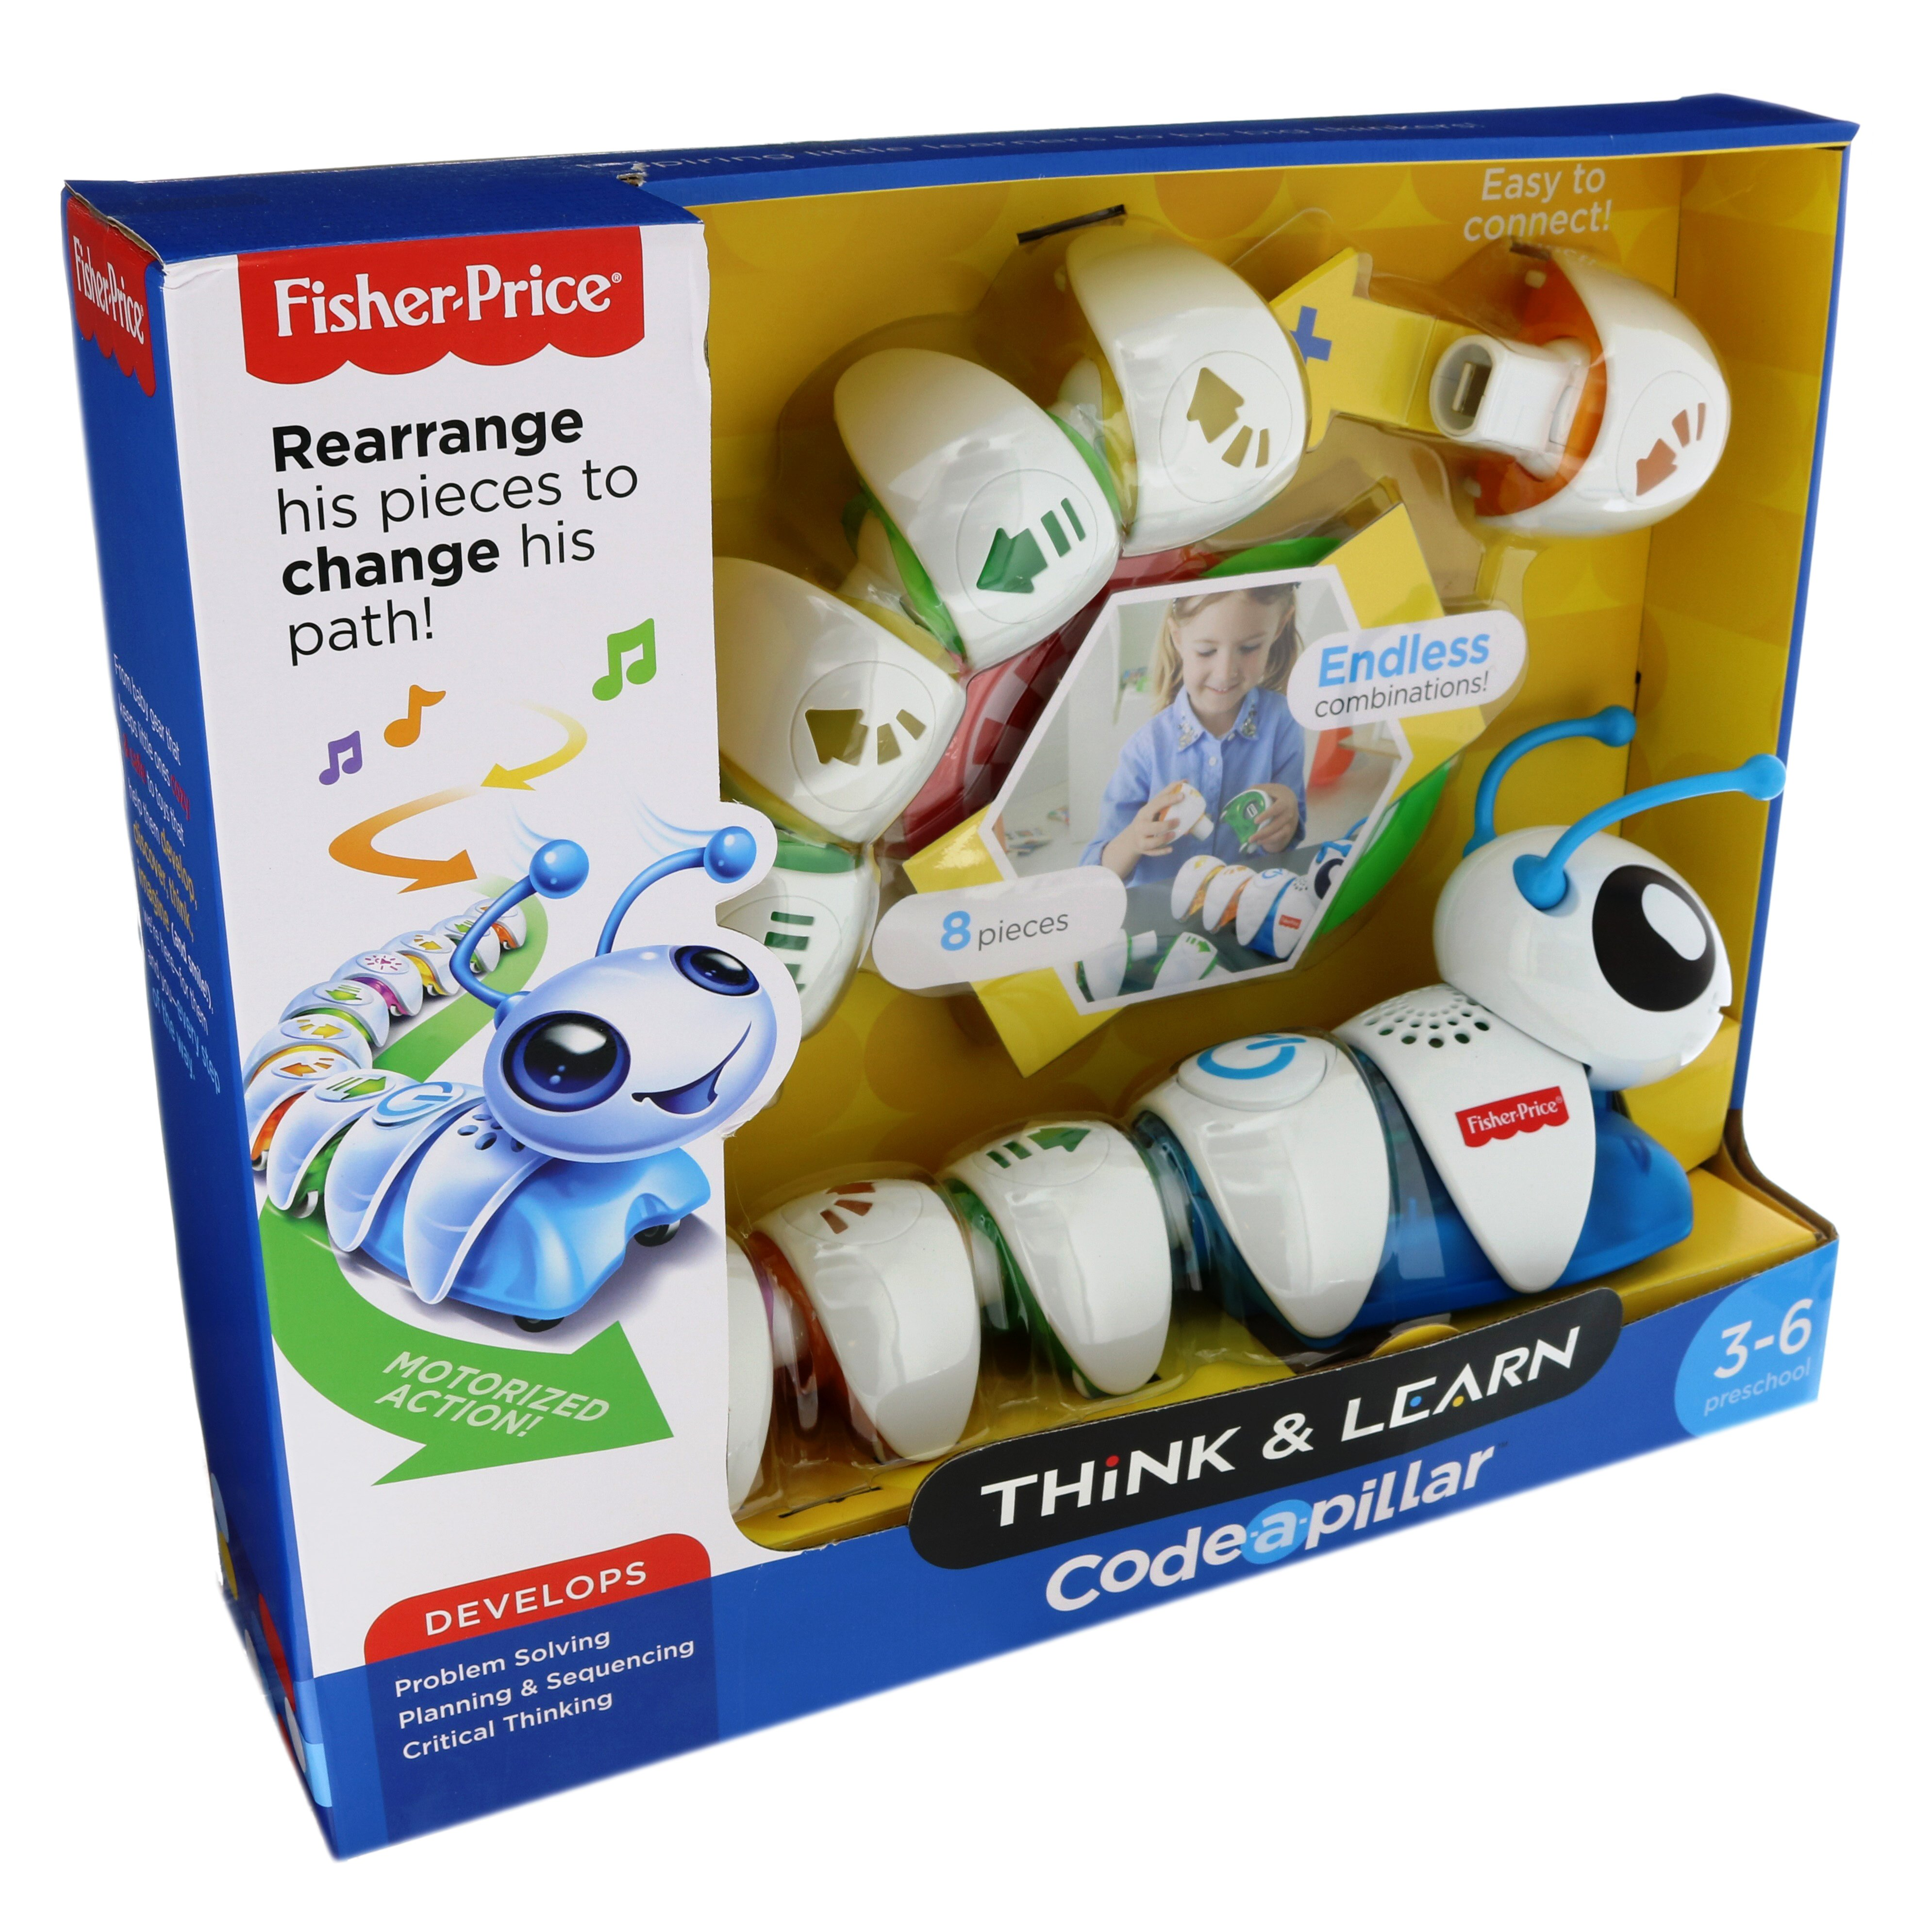 New Fisher Price Fisher-Price Think /& Learn Code-a-pillar Replacement Parts